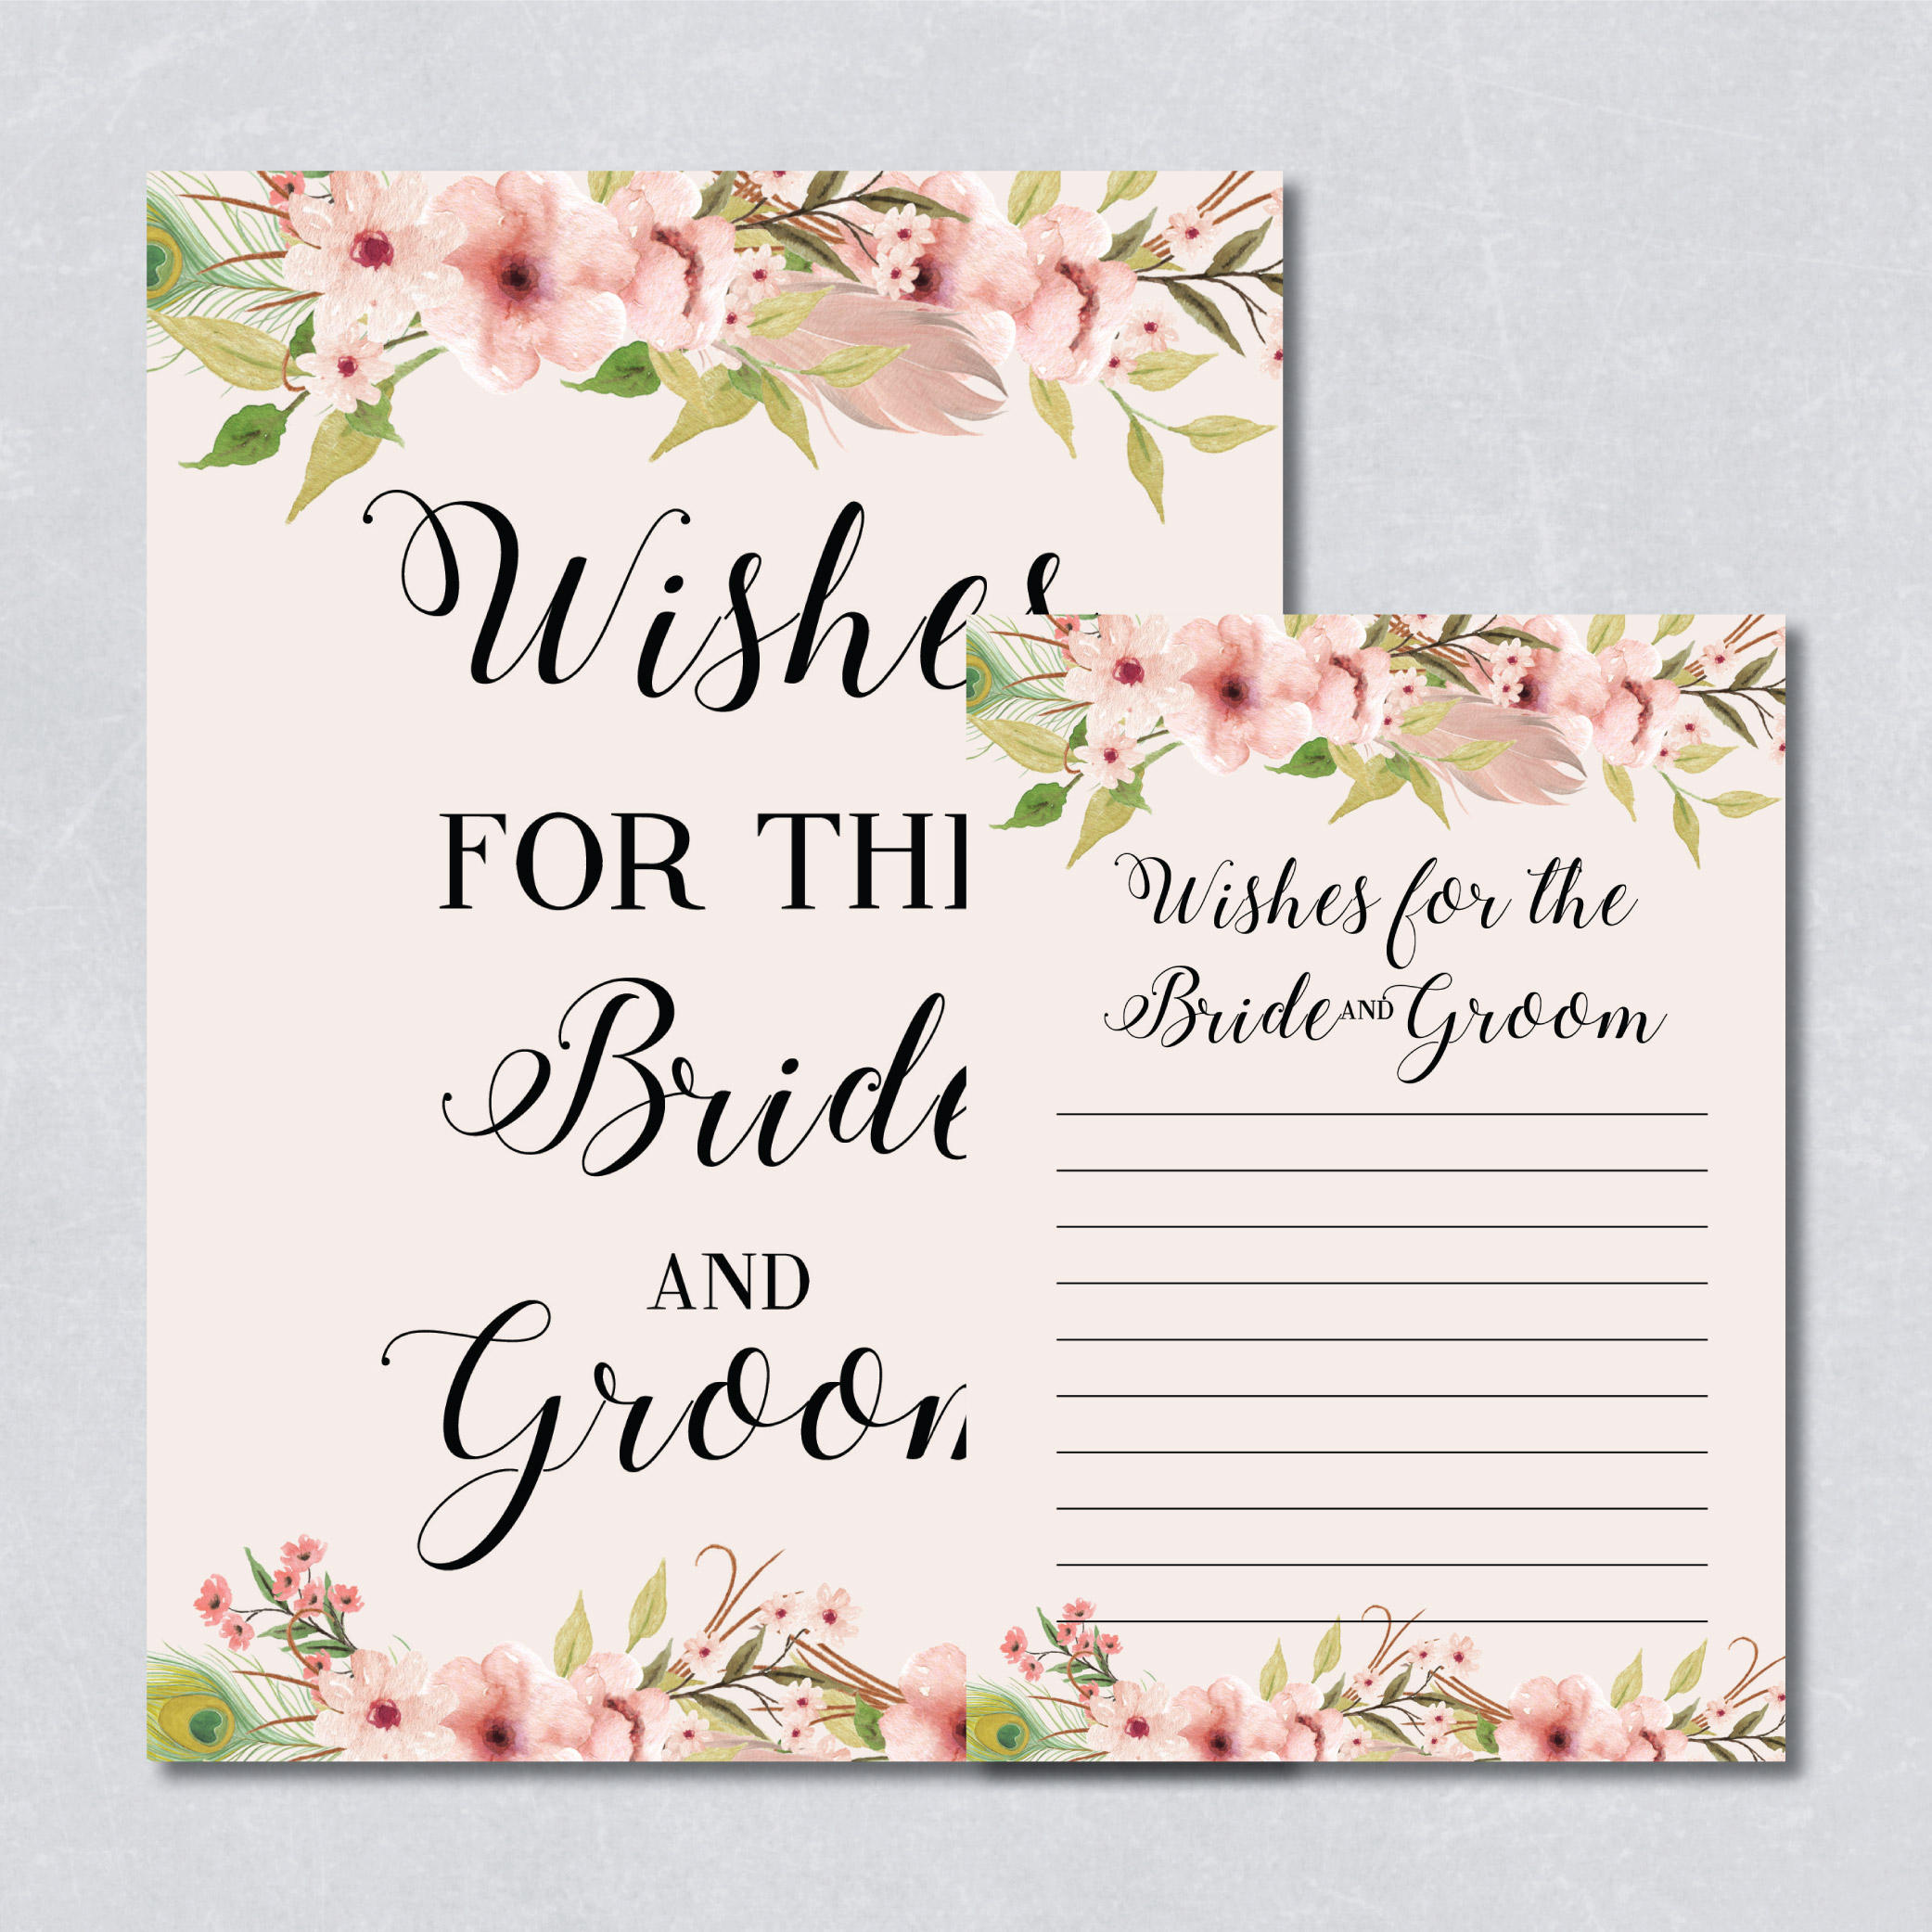 wishes for the bride and groom card floral bridal shower